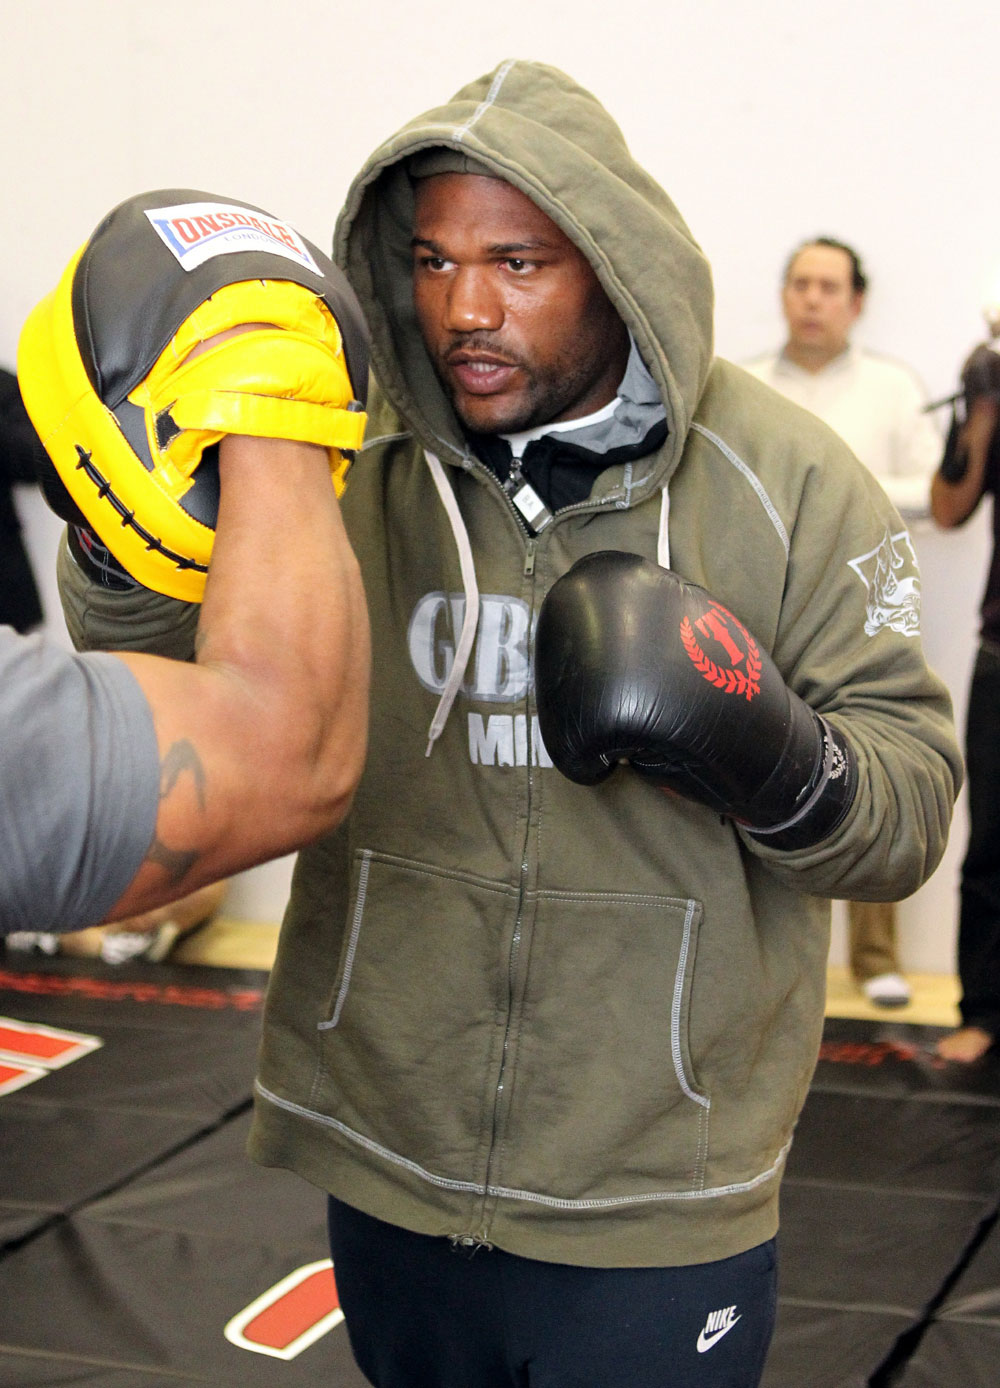 Quinton &quot;Rampage&quot; Jackson works out for the media at the UFC 123 open workouts at the Detroit Athletic Club in Detroit, Michigan on November 18, 2010  (Photo by Josh Hedges/Zuffa LLC/Zuffa LLC via Getty Images)